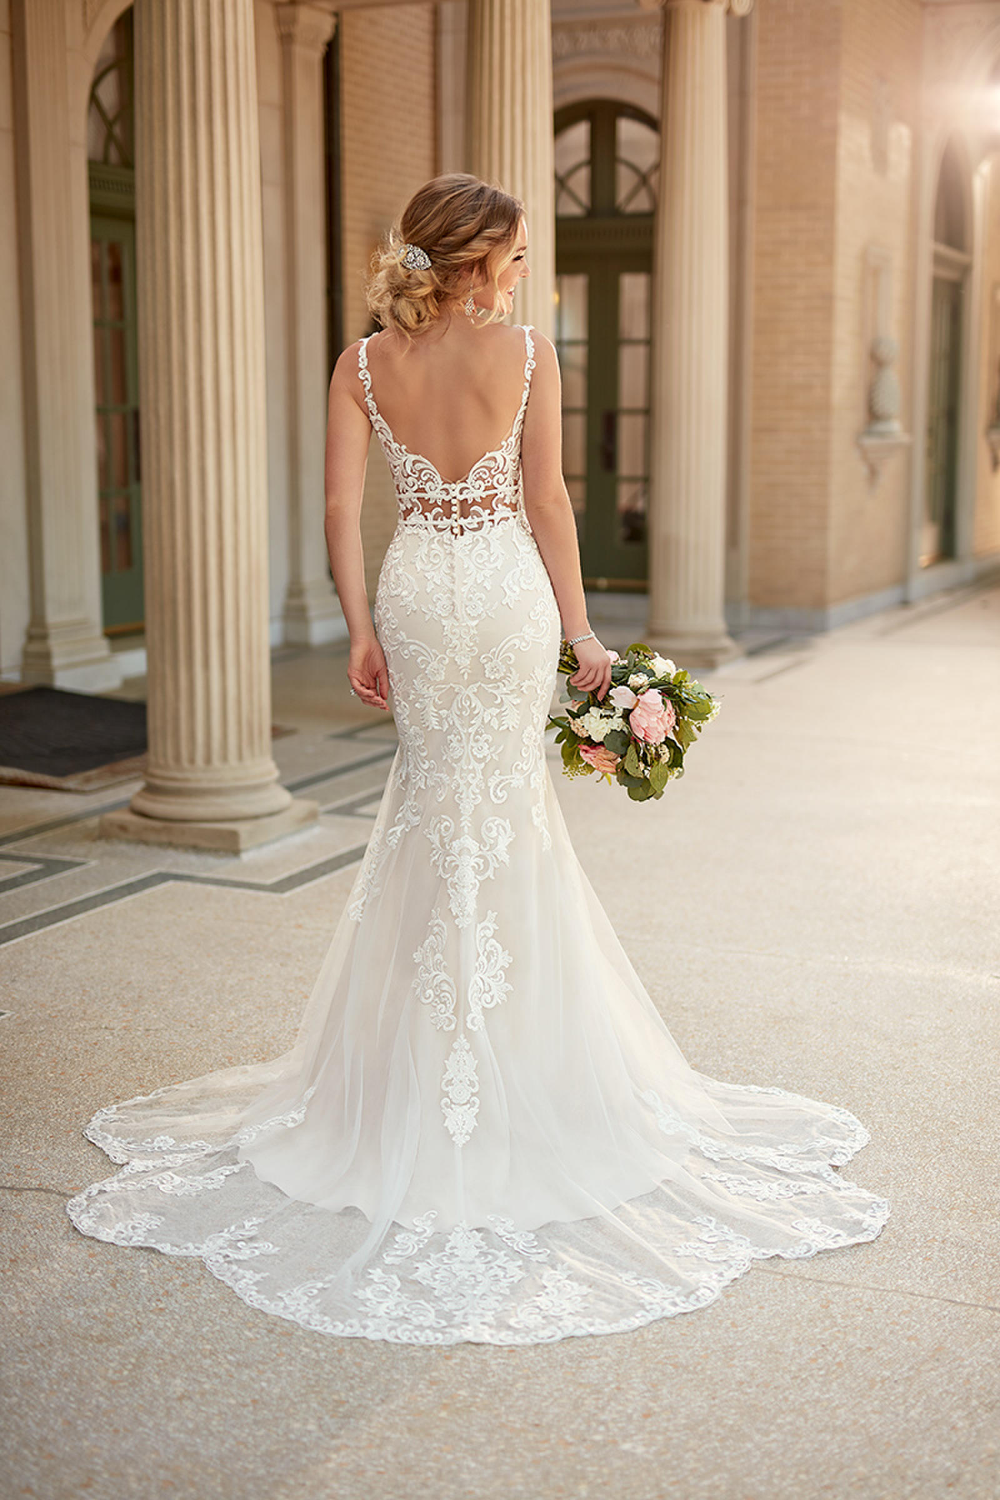 Stella York Bridal 6914 Ella Park Bridal Chic Bridal Dress Backless Mermaid Wedding Dresses York Wedding Dress